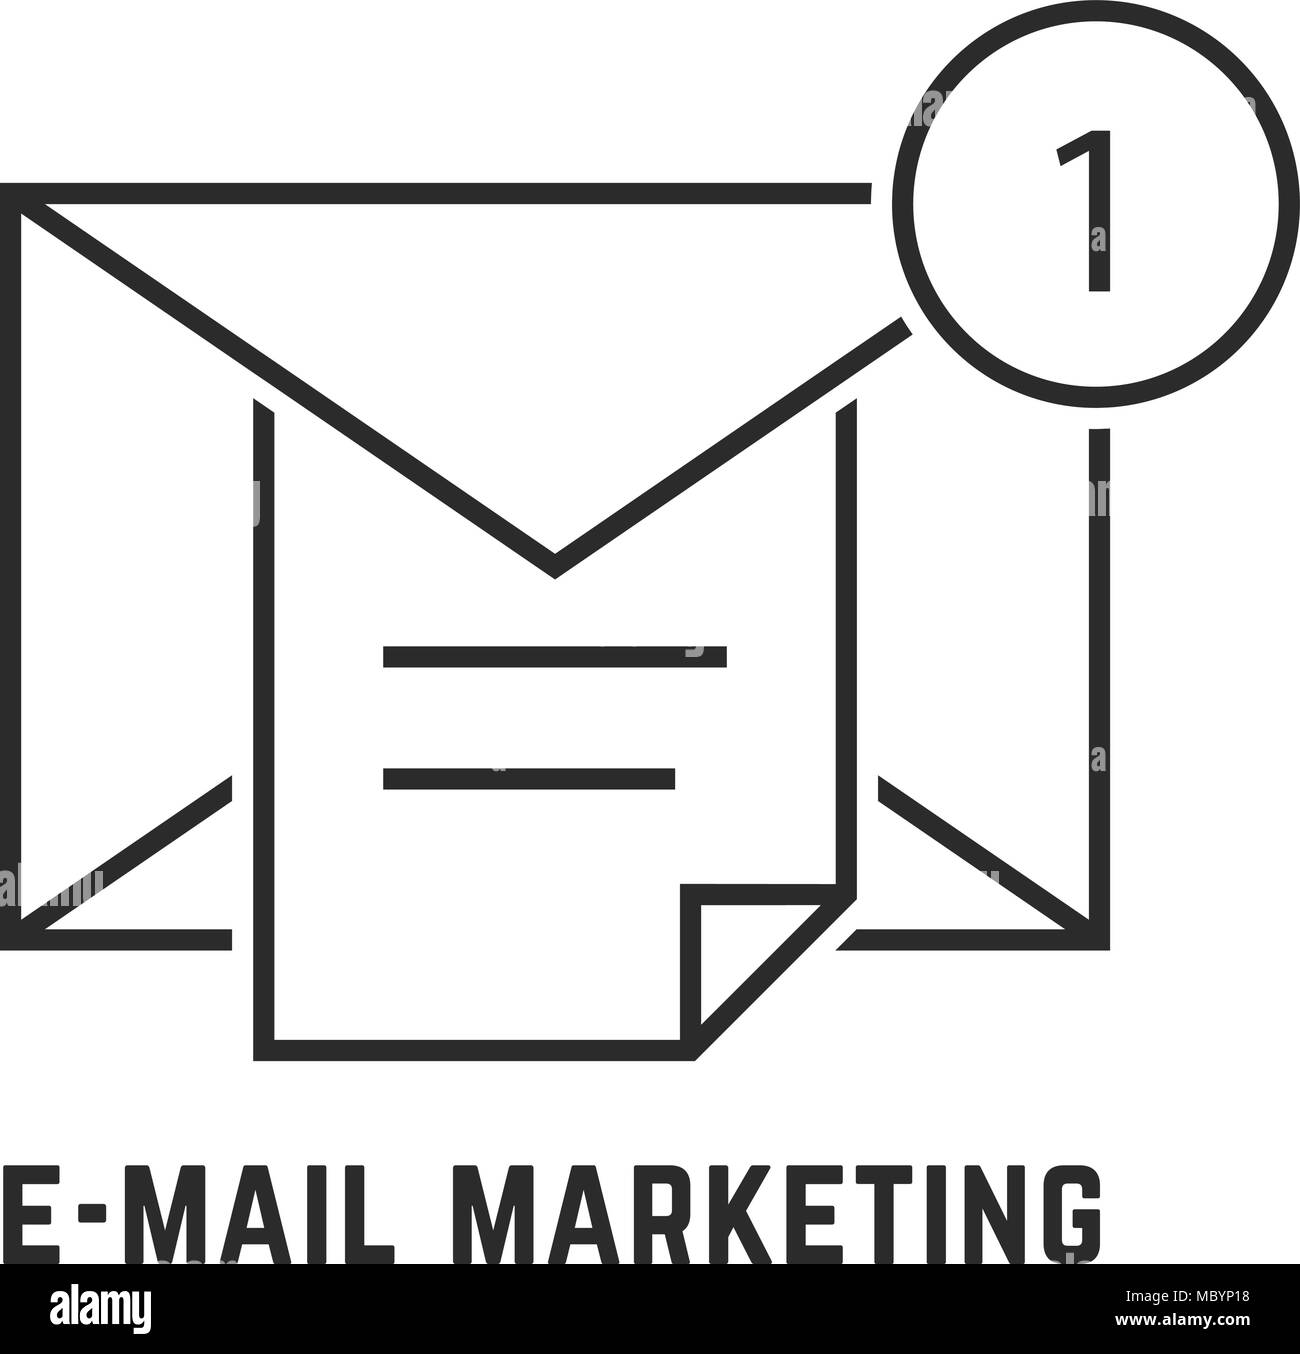 e-mail marketing with thin line notice - Stock Image